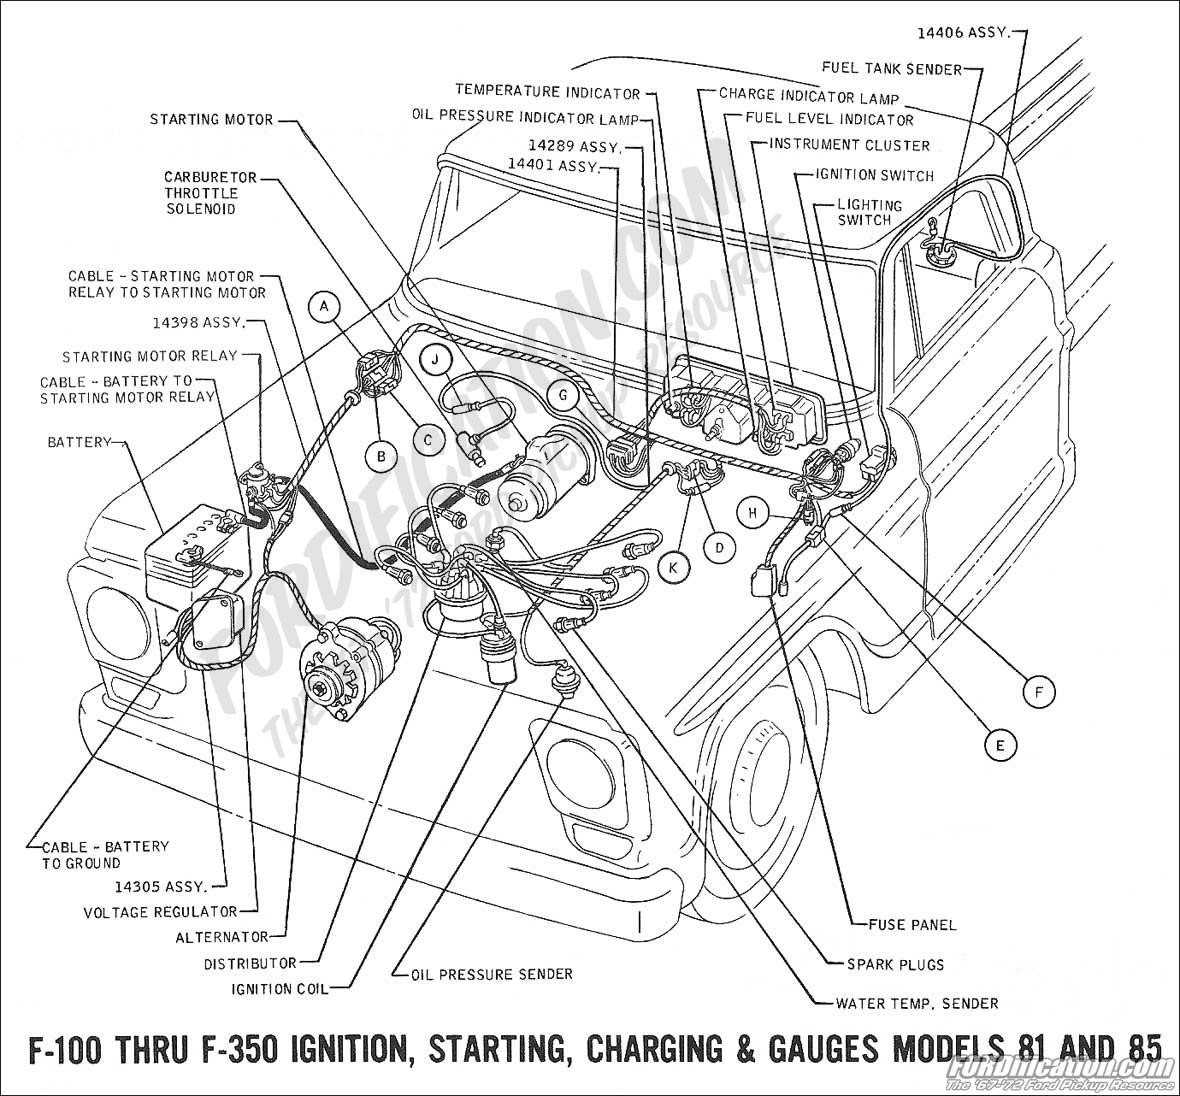 1969 Ford Electric Choke Wiring | Wiring Schematic Diagram Electric Fuel Pump Wiring Diagram Chevelle on fuel gauge wiring diagram, international 8100 fuel diagram, fuel pump circuit diagram, 1998 buick lesabre fuel pump diagram, electric antenna wiring diagram, ford f-350 super duty wiring diagram, fuel injector wiring diagram, fan relay wiring diagram, fuel pump relay diagram, electric fan wiring diagram, backup lights wiring diagram, fuel system wiring diagram, holley fuel pump diagram, electric fuel pumps for carbureted engines, electric clock wiring diagram, automatic choke wiring diagram, gm fuel pump connector diagram, thermostat wiring diagram, 91 ford ranger fuel pump diagram, throttle body wiring diagram,